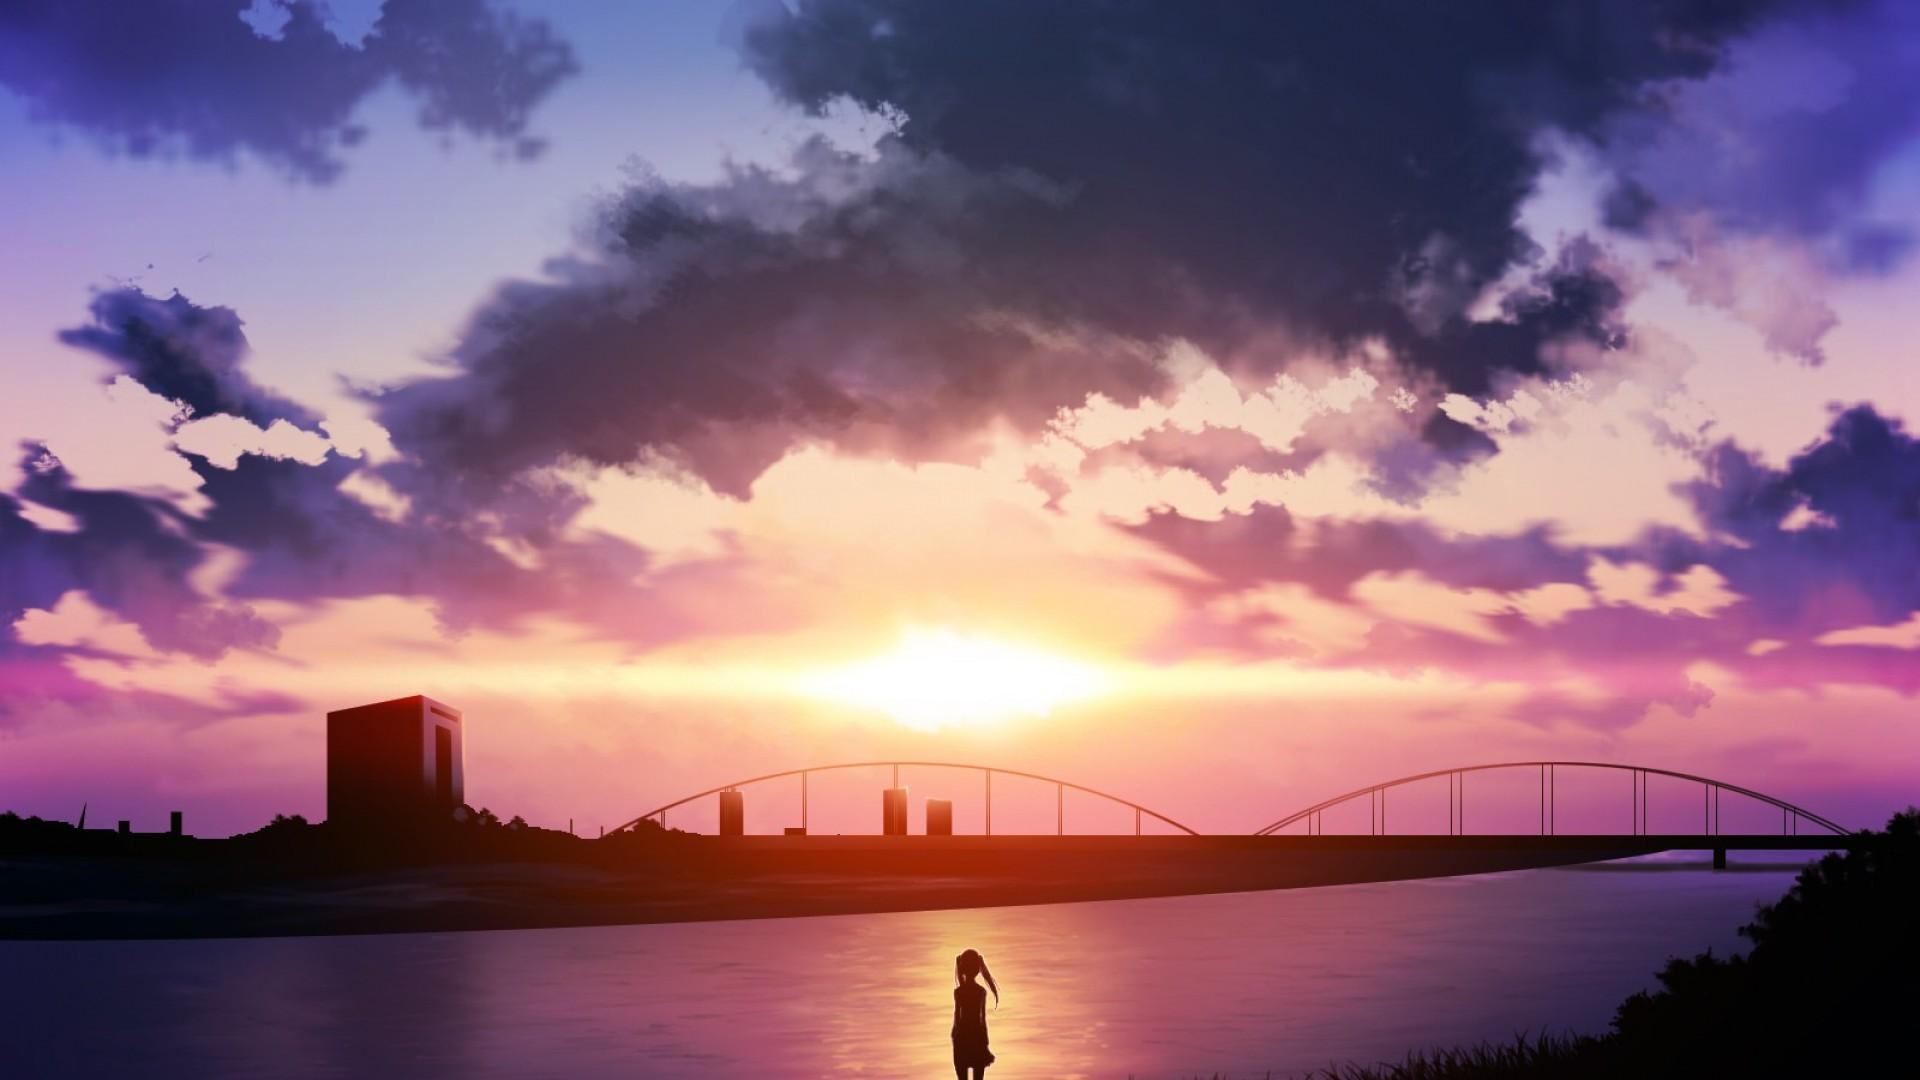 Sky Anime Scenery Wallpapers - Wallpaper Cave